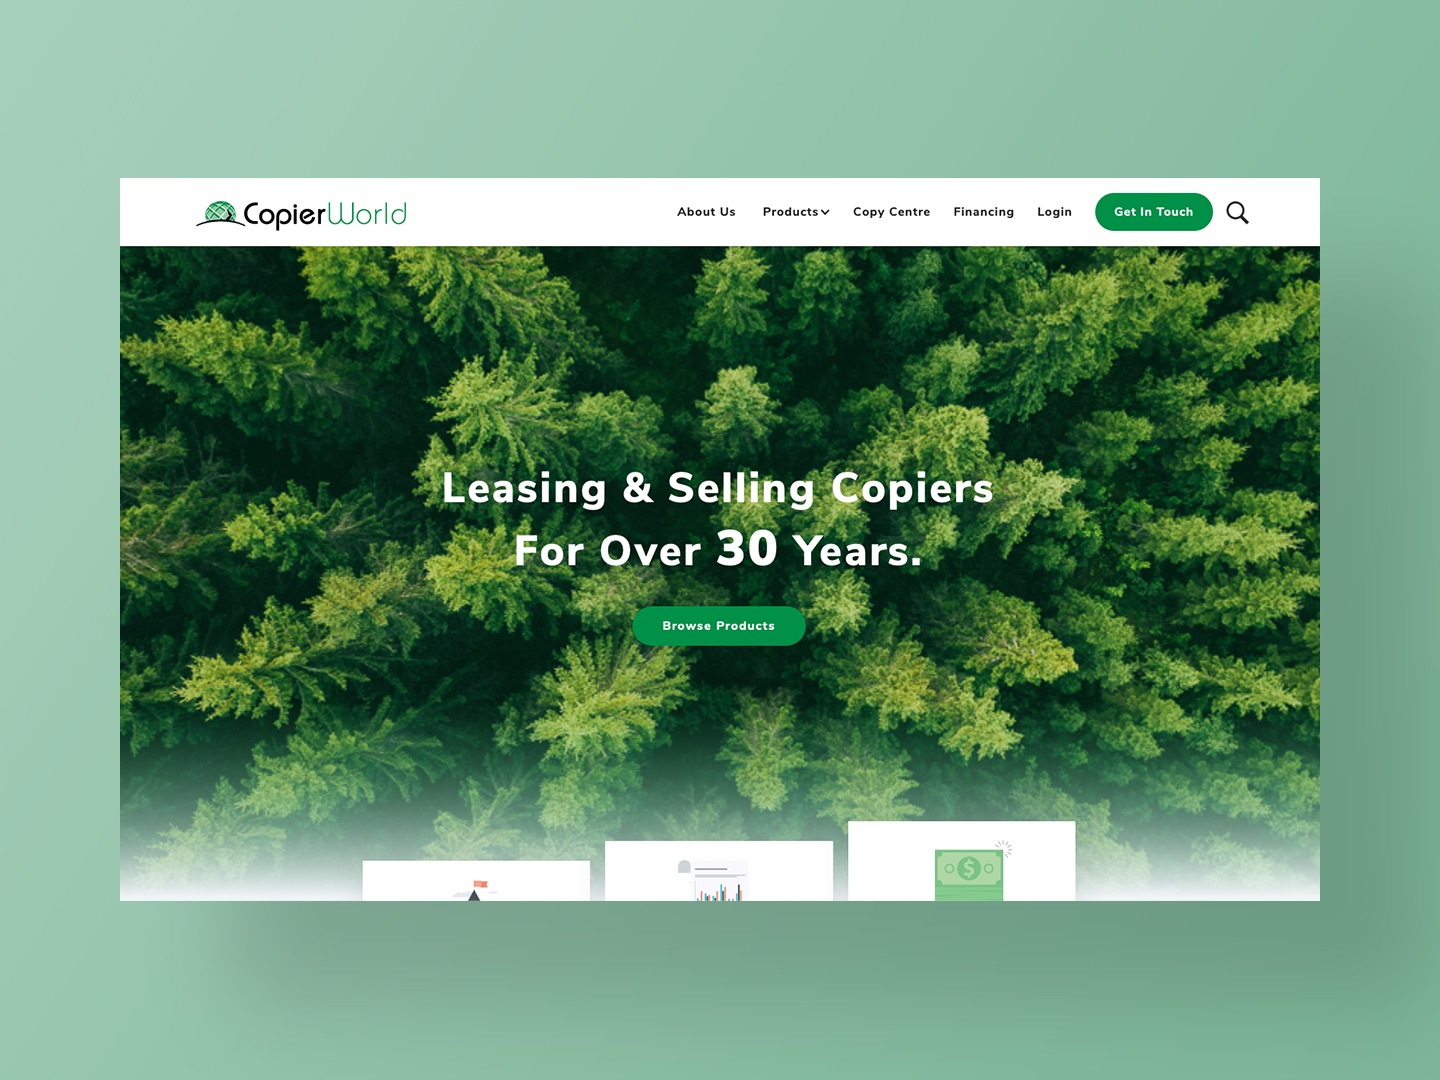 Copier Worlds new website designed and developed by Neon Hive